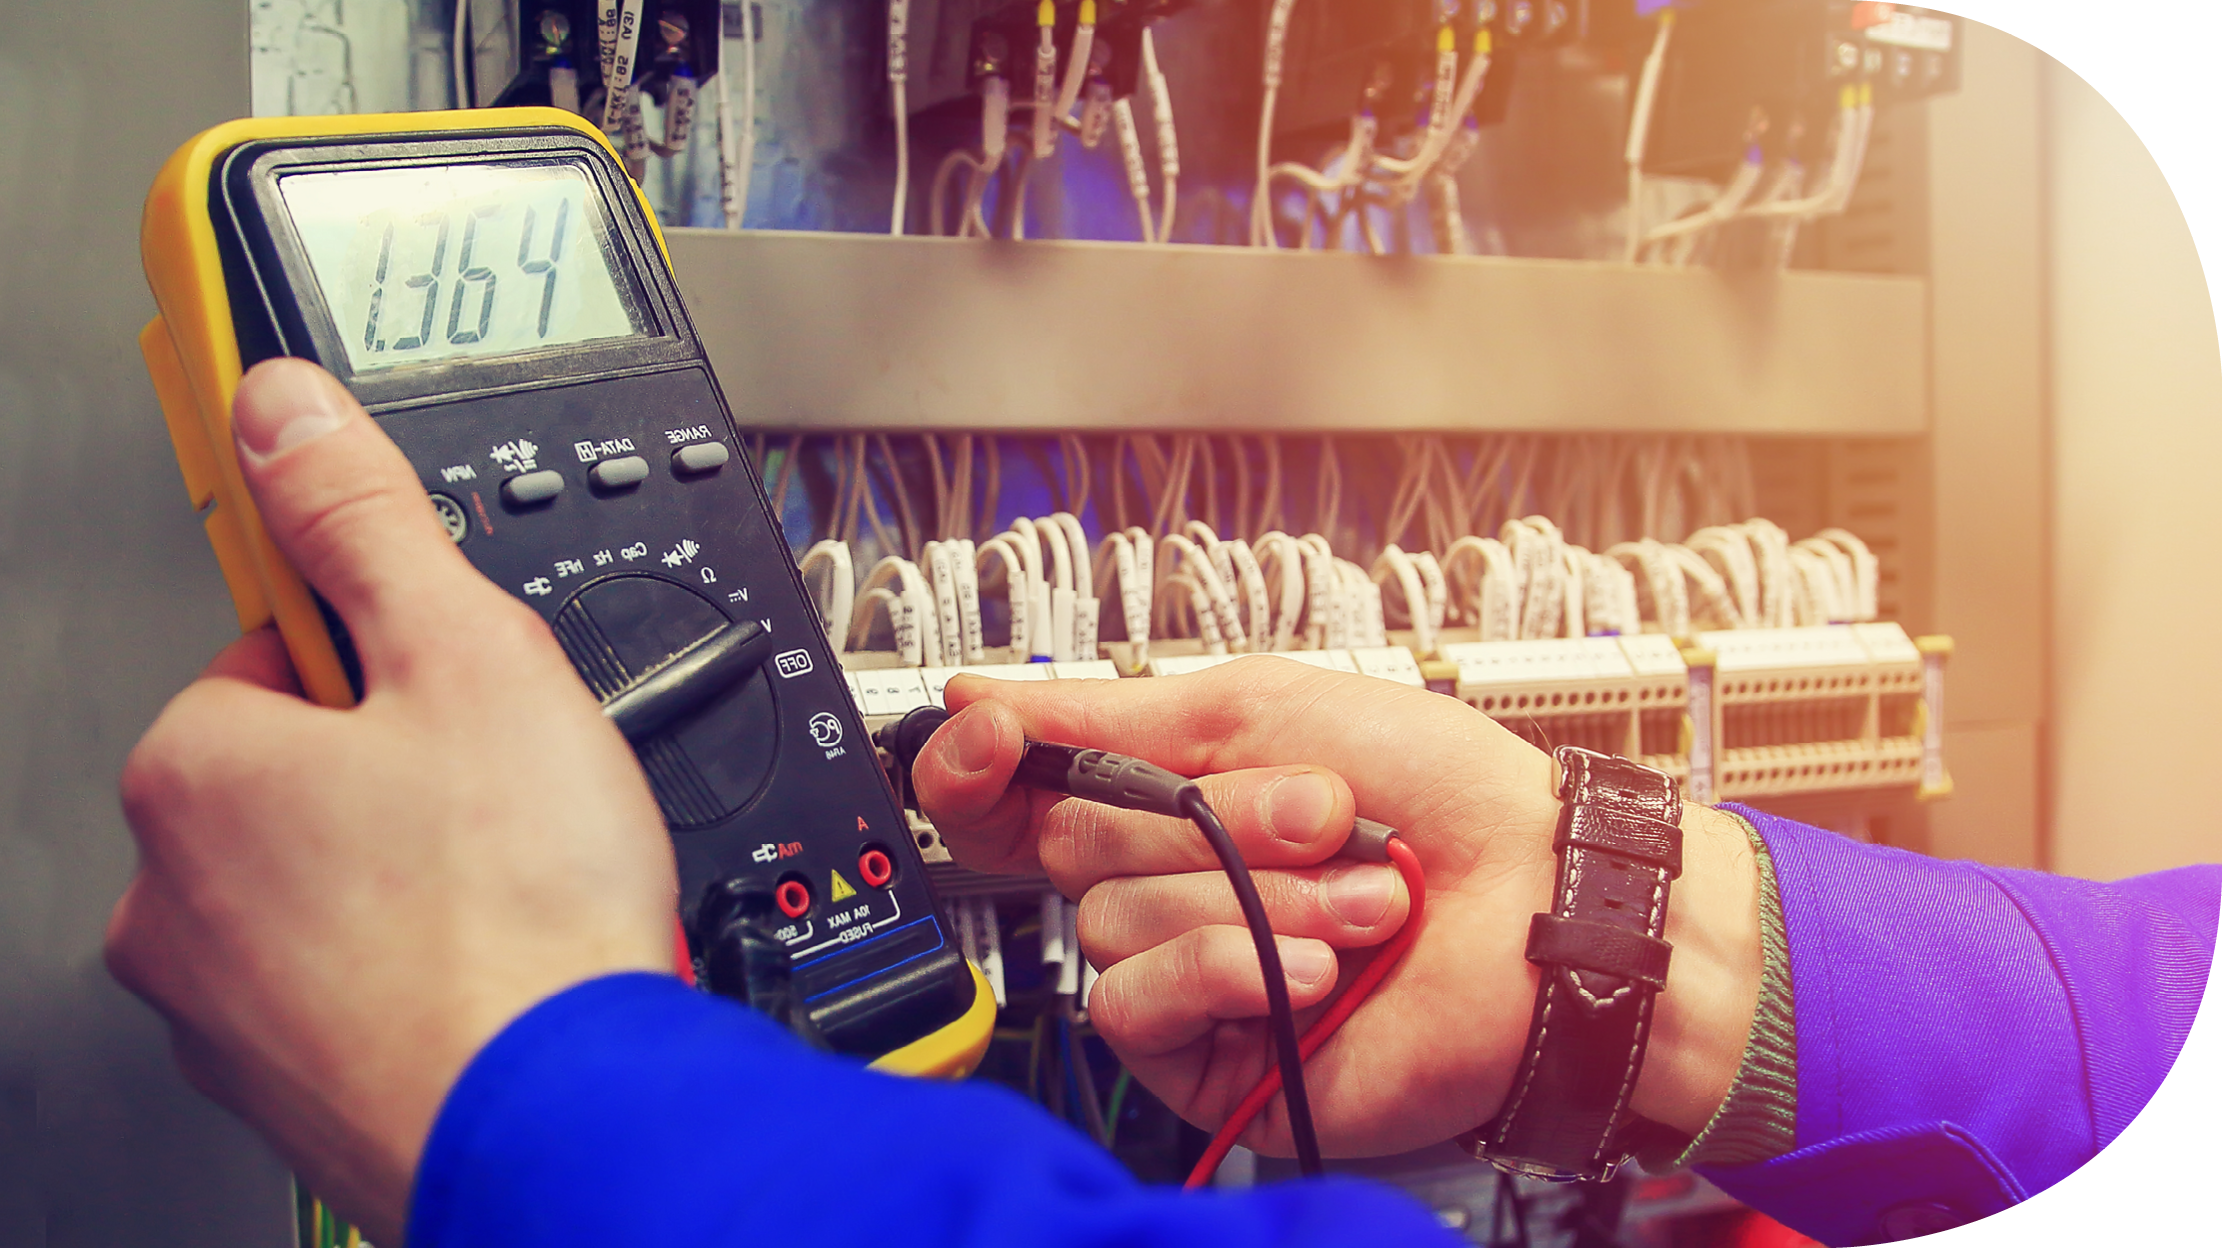 Electricity - We provide electrical engineering, installation and maintenance services (low and high voltage).